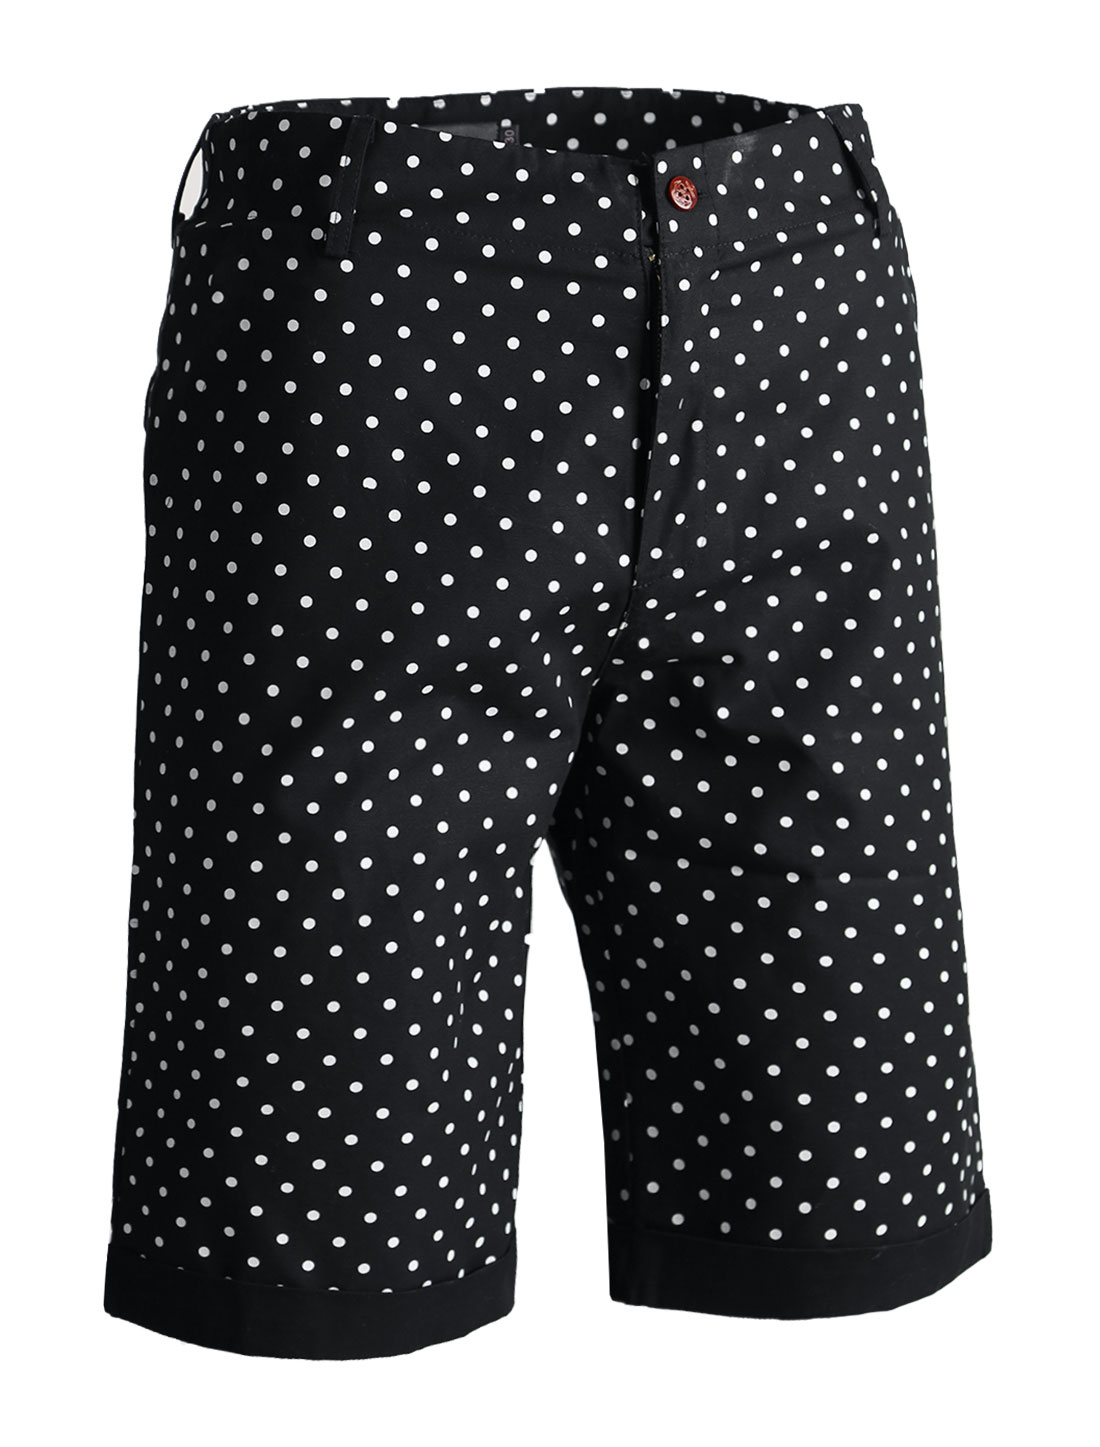 Men Polka Dot Print Cuffed Casual Shorts Black W32